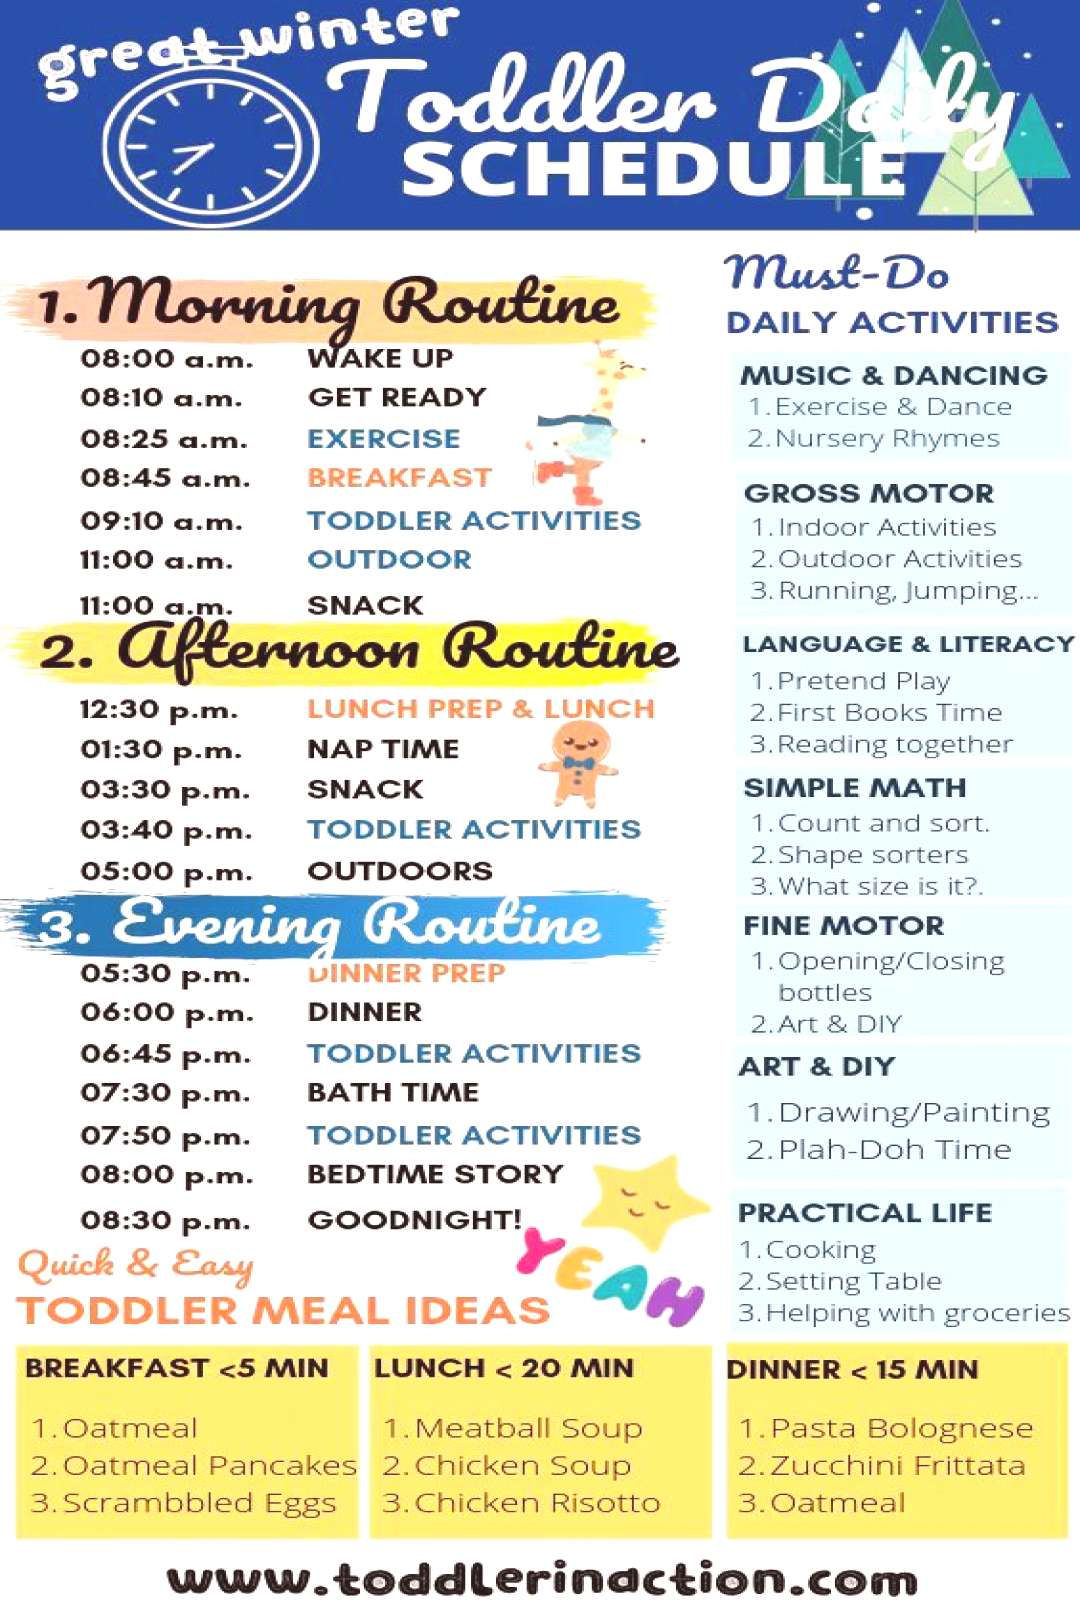 Simple and Easy Daily Toddler Schedule incl. Must-Do Daily Activities and Toddler Meal Ideas Make y